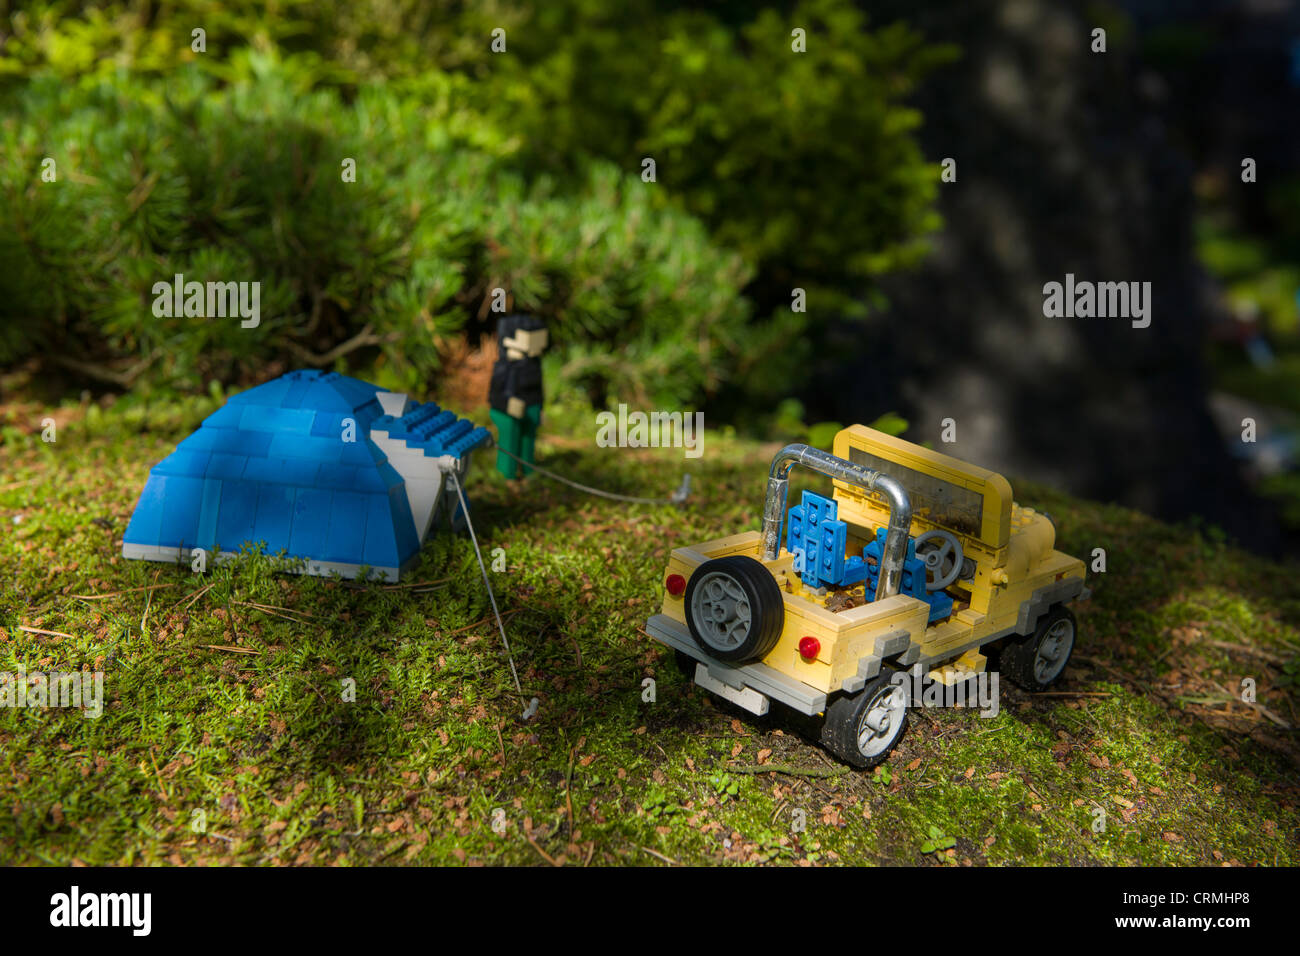 Detail of Lego tent and jeep at Miniland, Legoland, Billund, Denmark Stock Photo